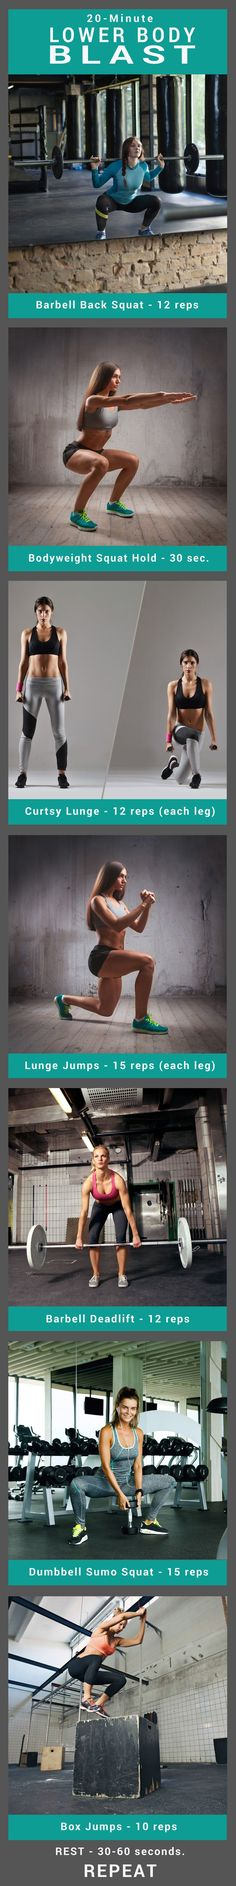 20-Minute Lower-Body Blast Workout For Butt, Hips and Thighs